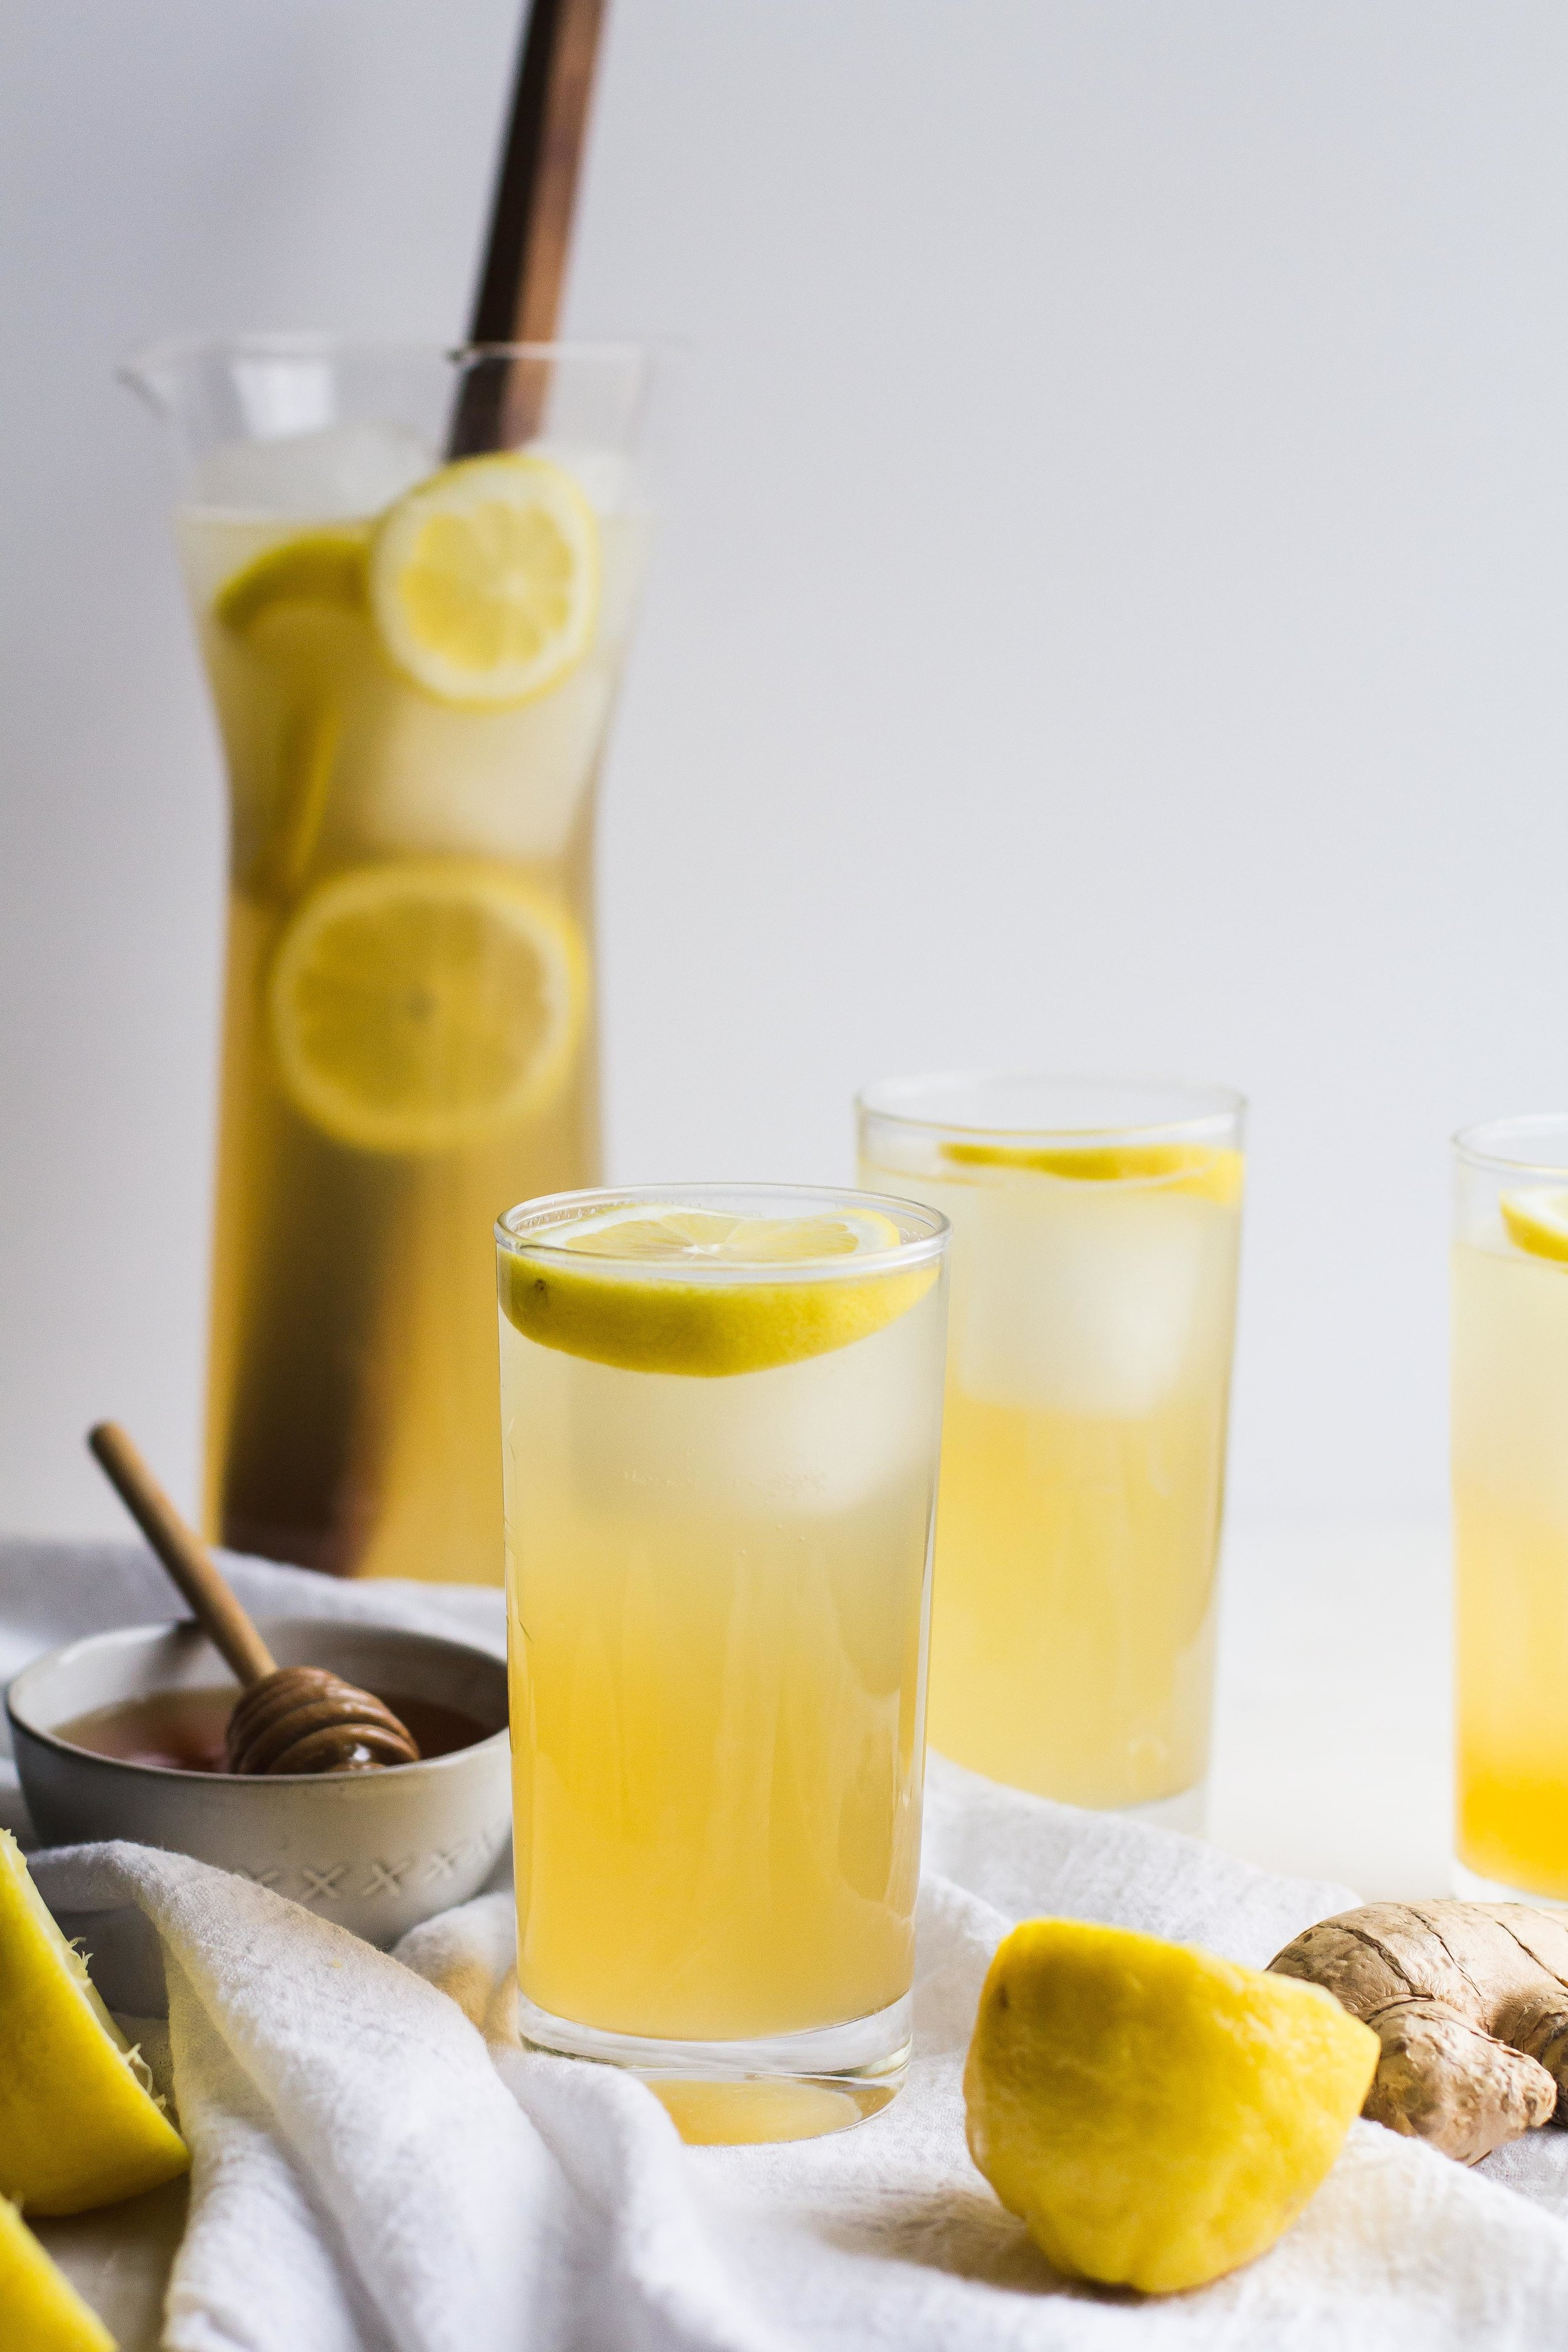 Ginger + Honey Sparkling Lemonade | Sarah J. Hauser #drinks #summer #lemonade